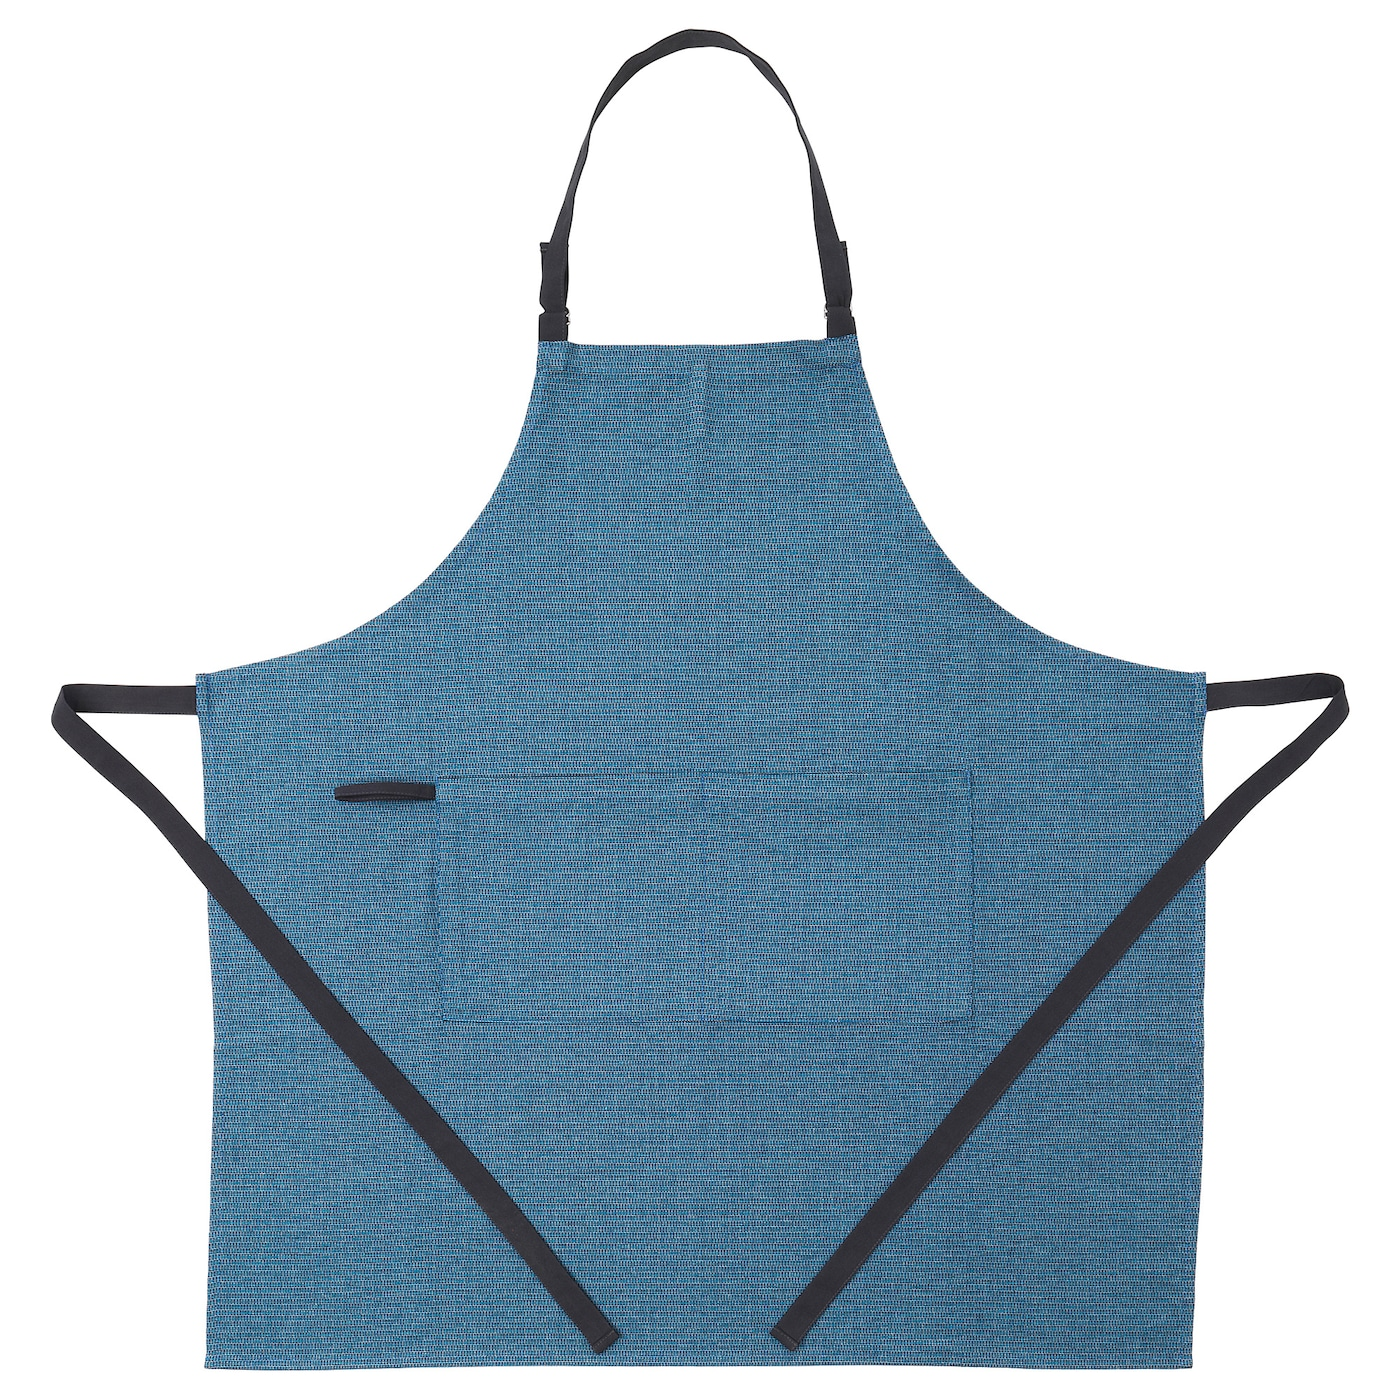 IKEA SOMMAR 2019 apron The neck-band can be adjusted to fit everybody.